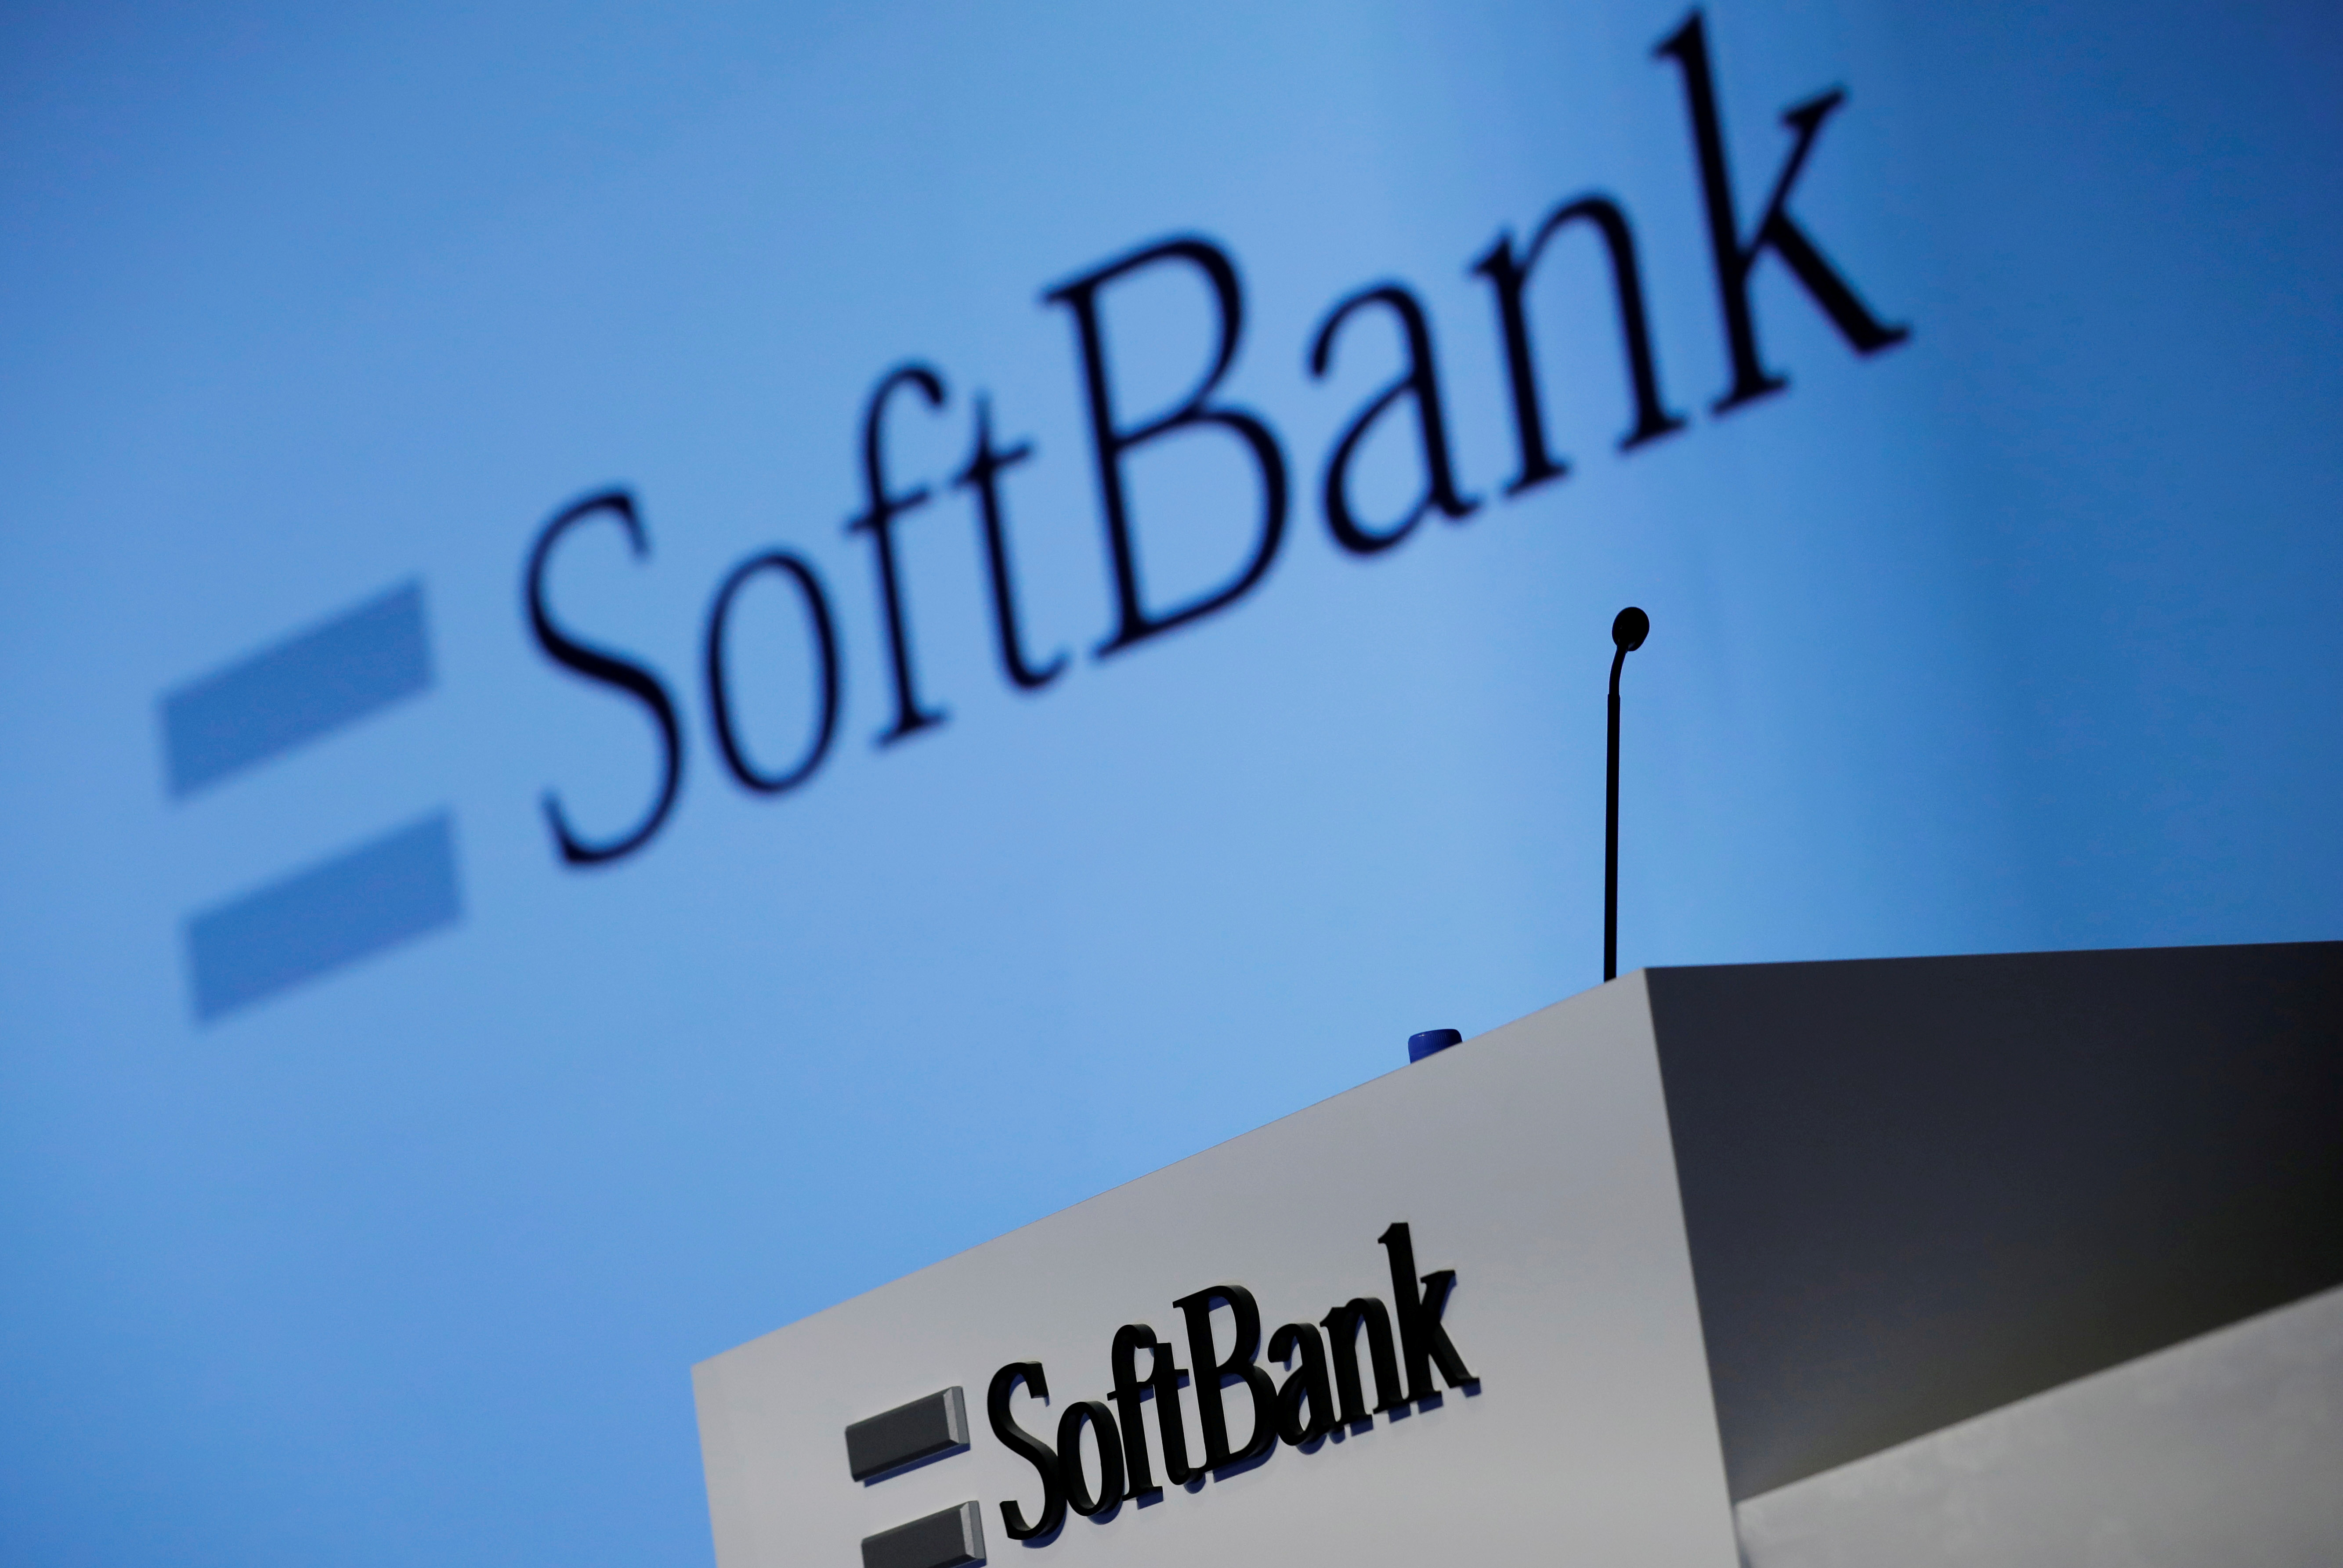 SoftBank Corp's logo is pictured at a news conference in Tokyo, Japan, February 4, 2021. REUTERS/Kim Kyung-Hoon